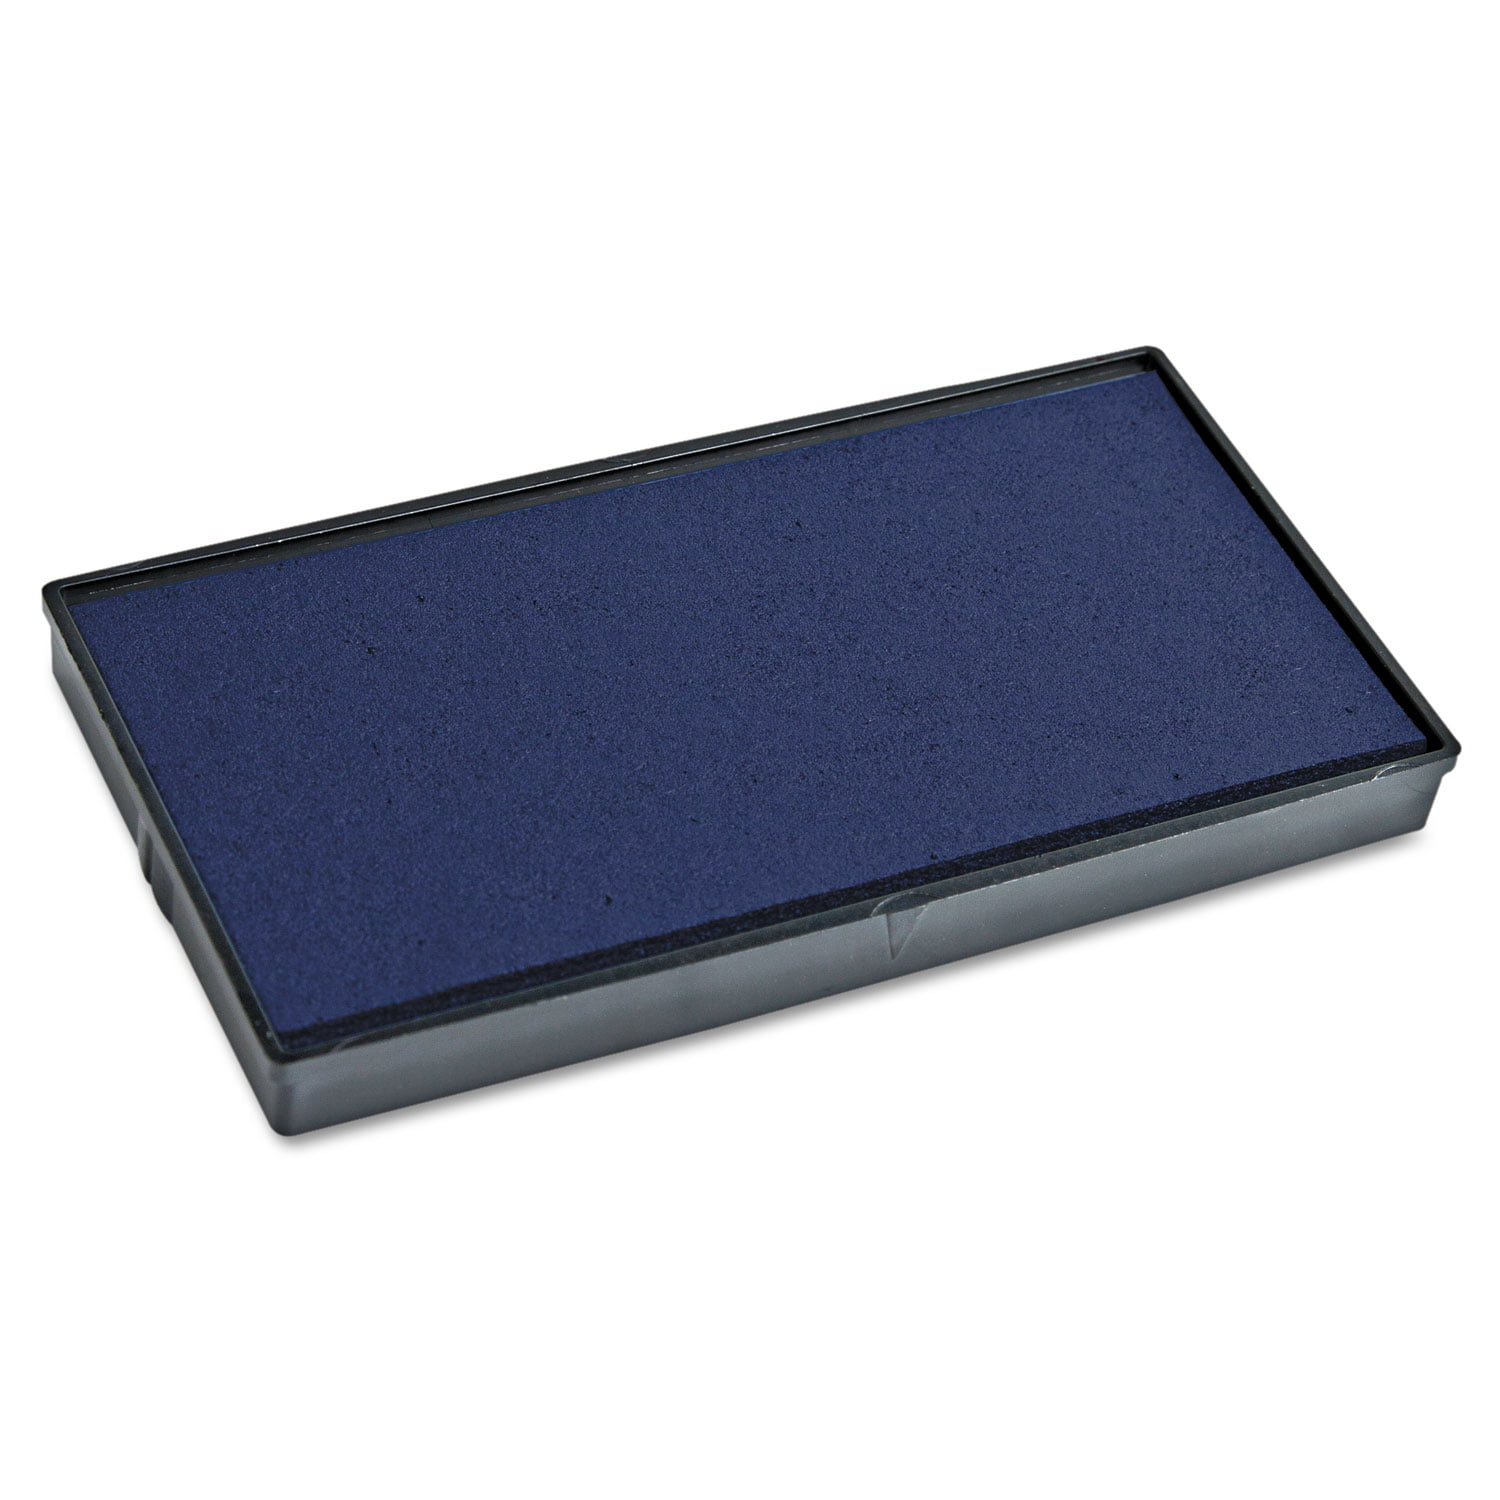 Replacement Ink Pad for 2000PLUS 1SI40PGL & 1SI40P, Blue by CONSOLIDATED STAMP